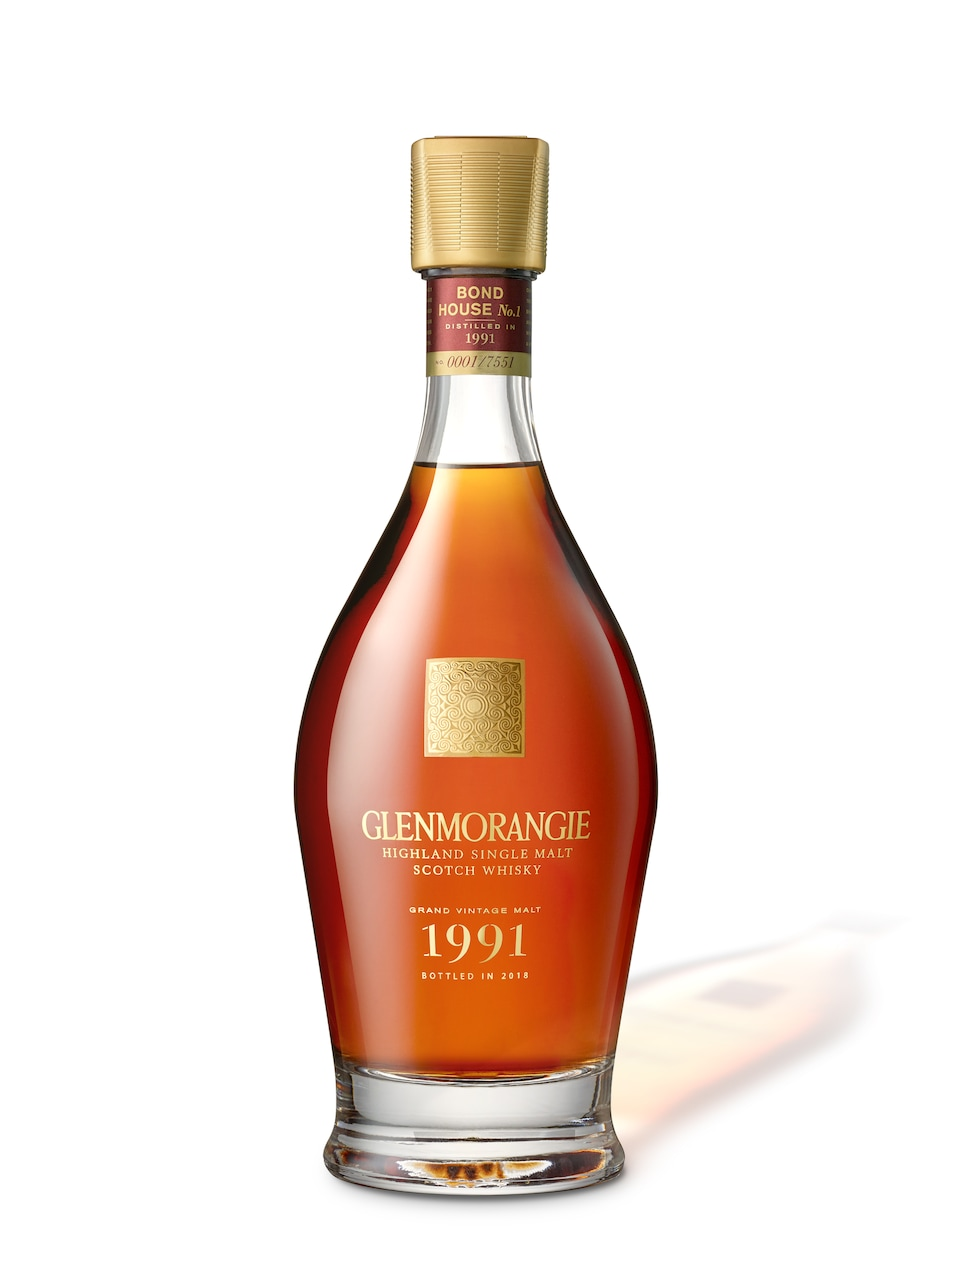 01_Bottle image_Grand vintage malt 1991